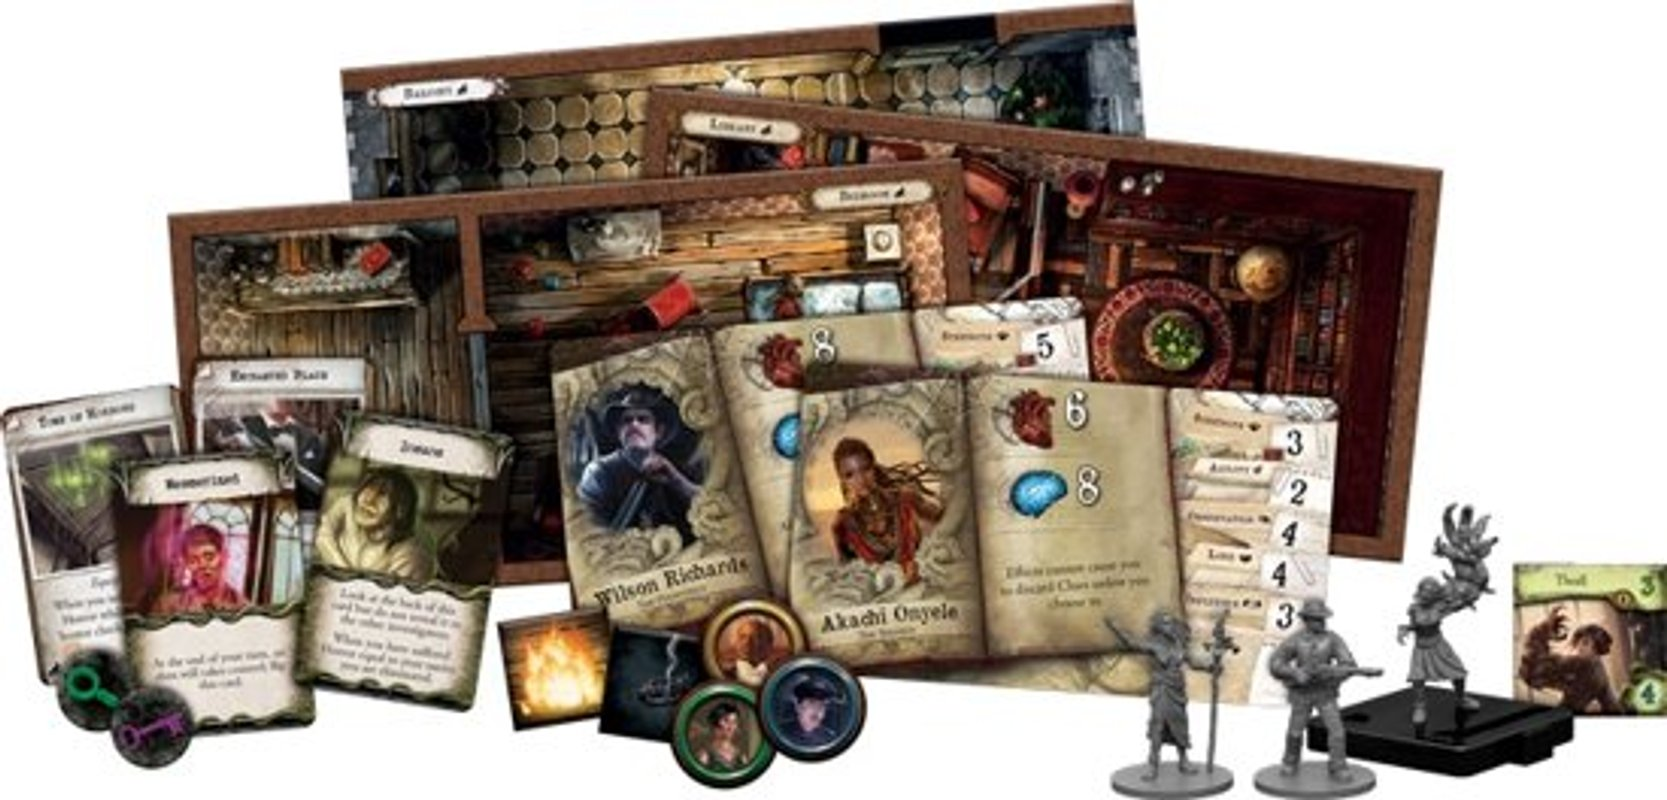 Mansions of Madness: Second Edition - Beyond the Threshold components